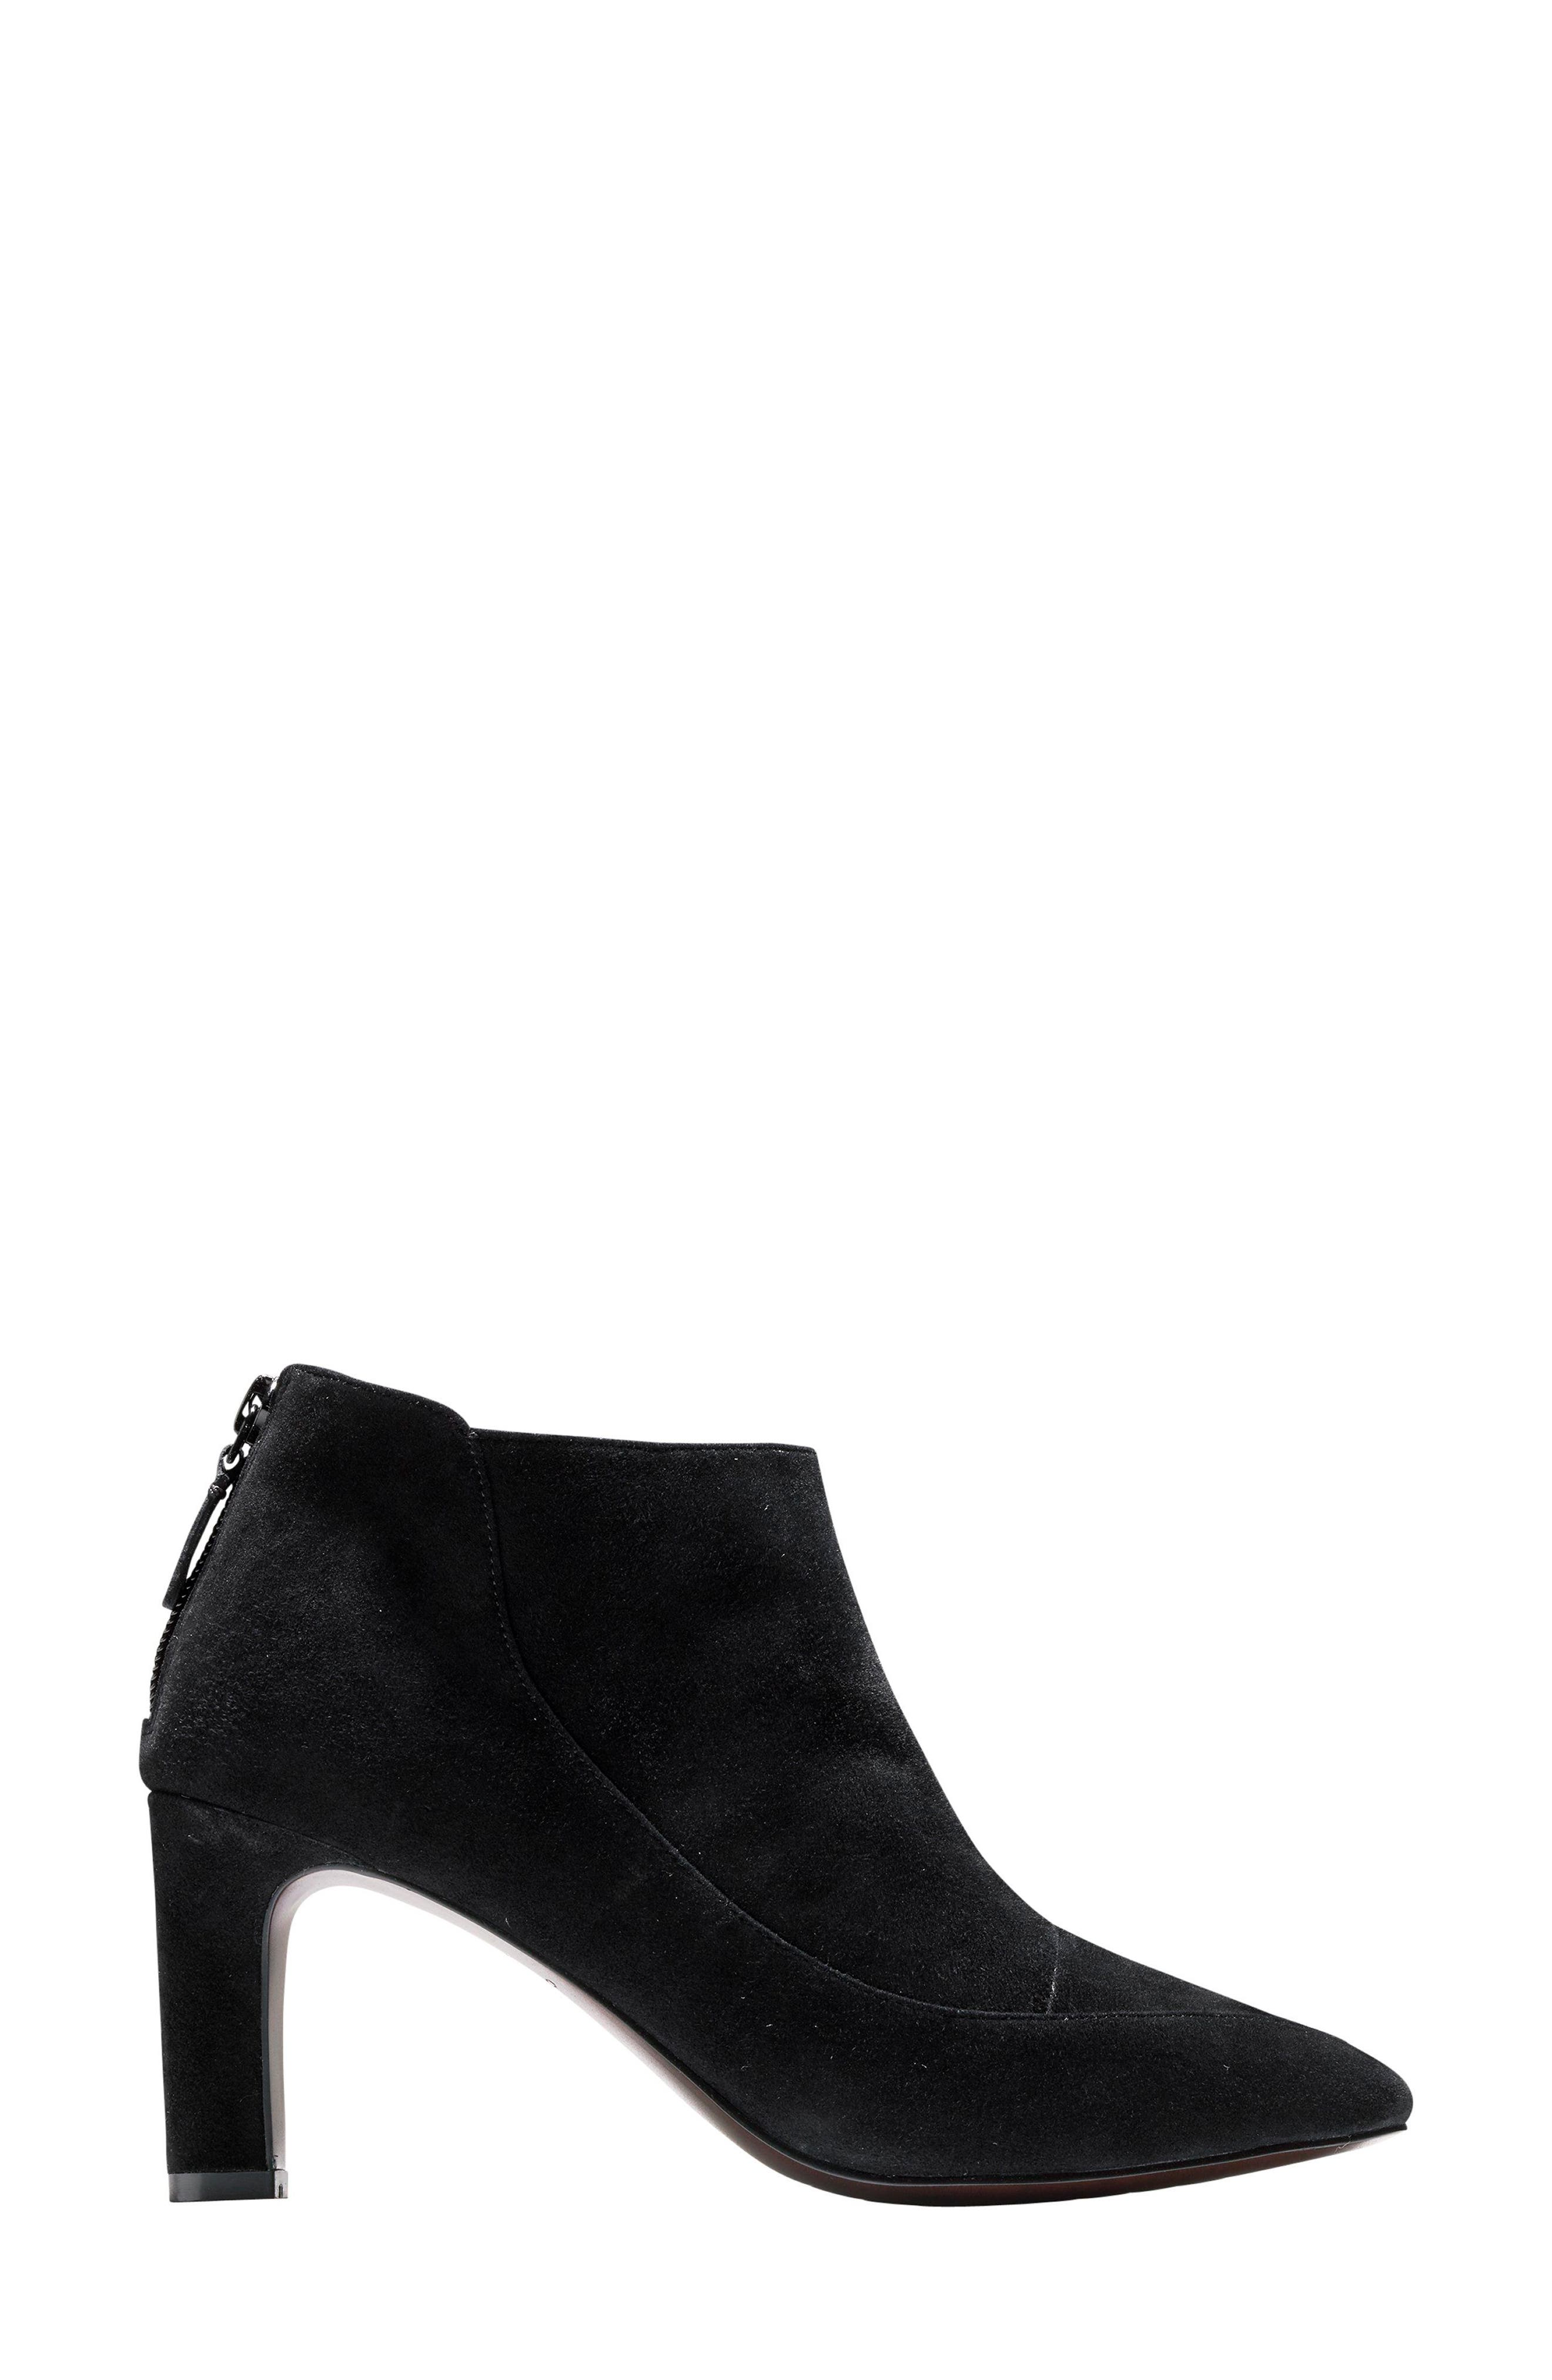 Arlean Pointy Toe Bootie,                             Alternate thumbnail 3, color,                             001